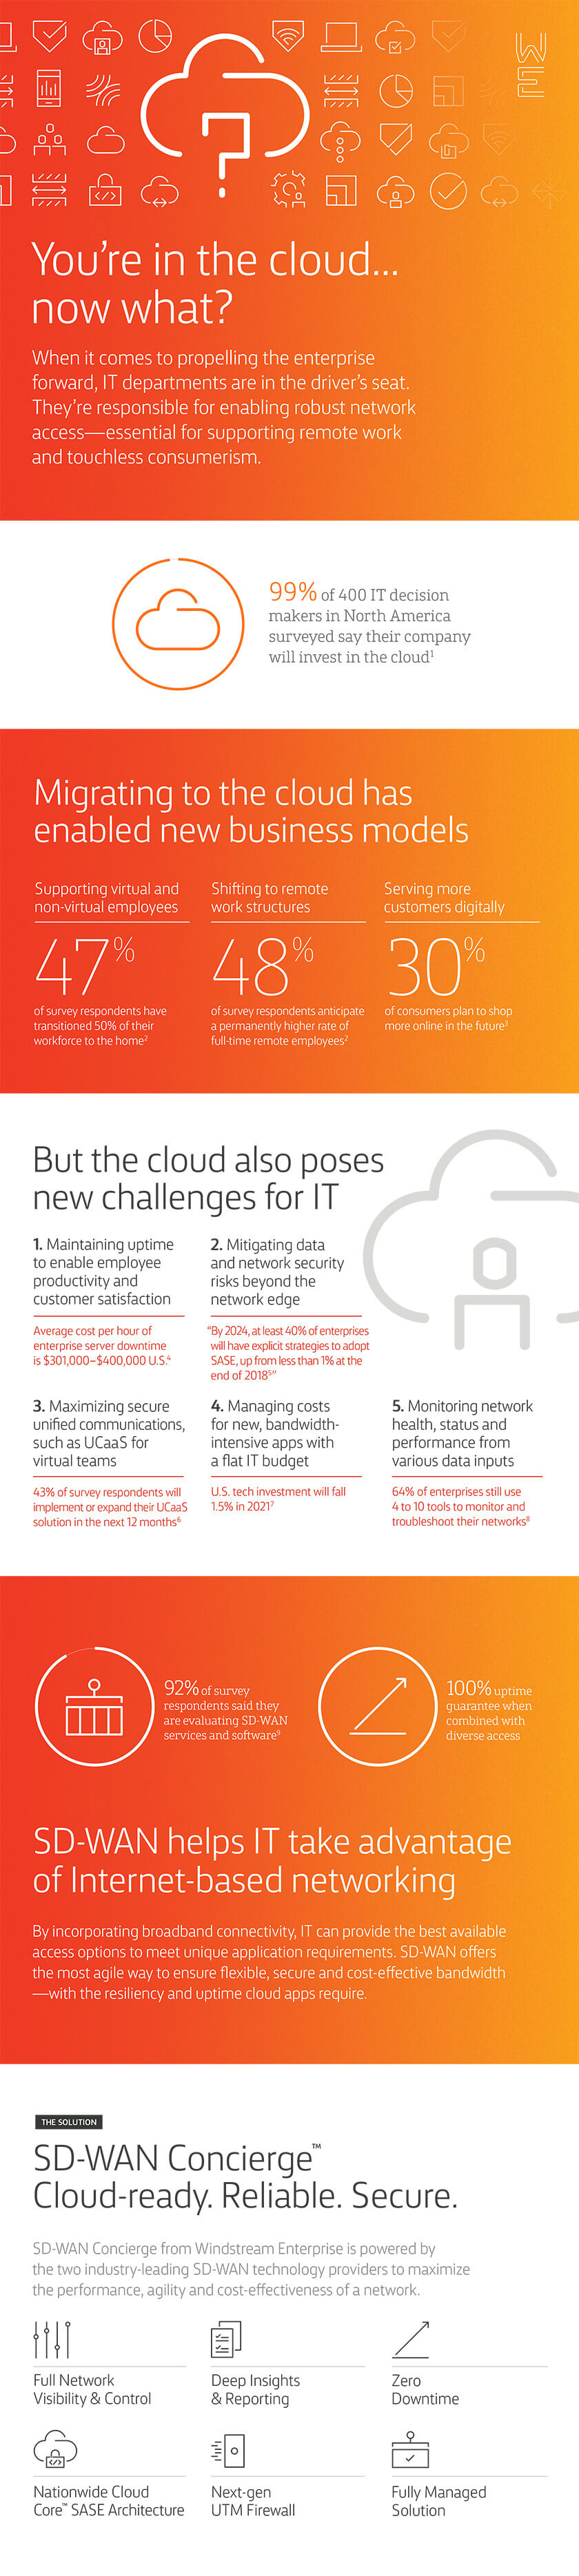 You're in the cloud, now what? Infographic